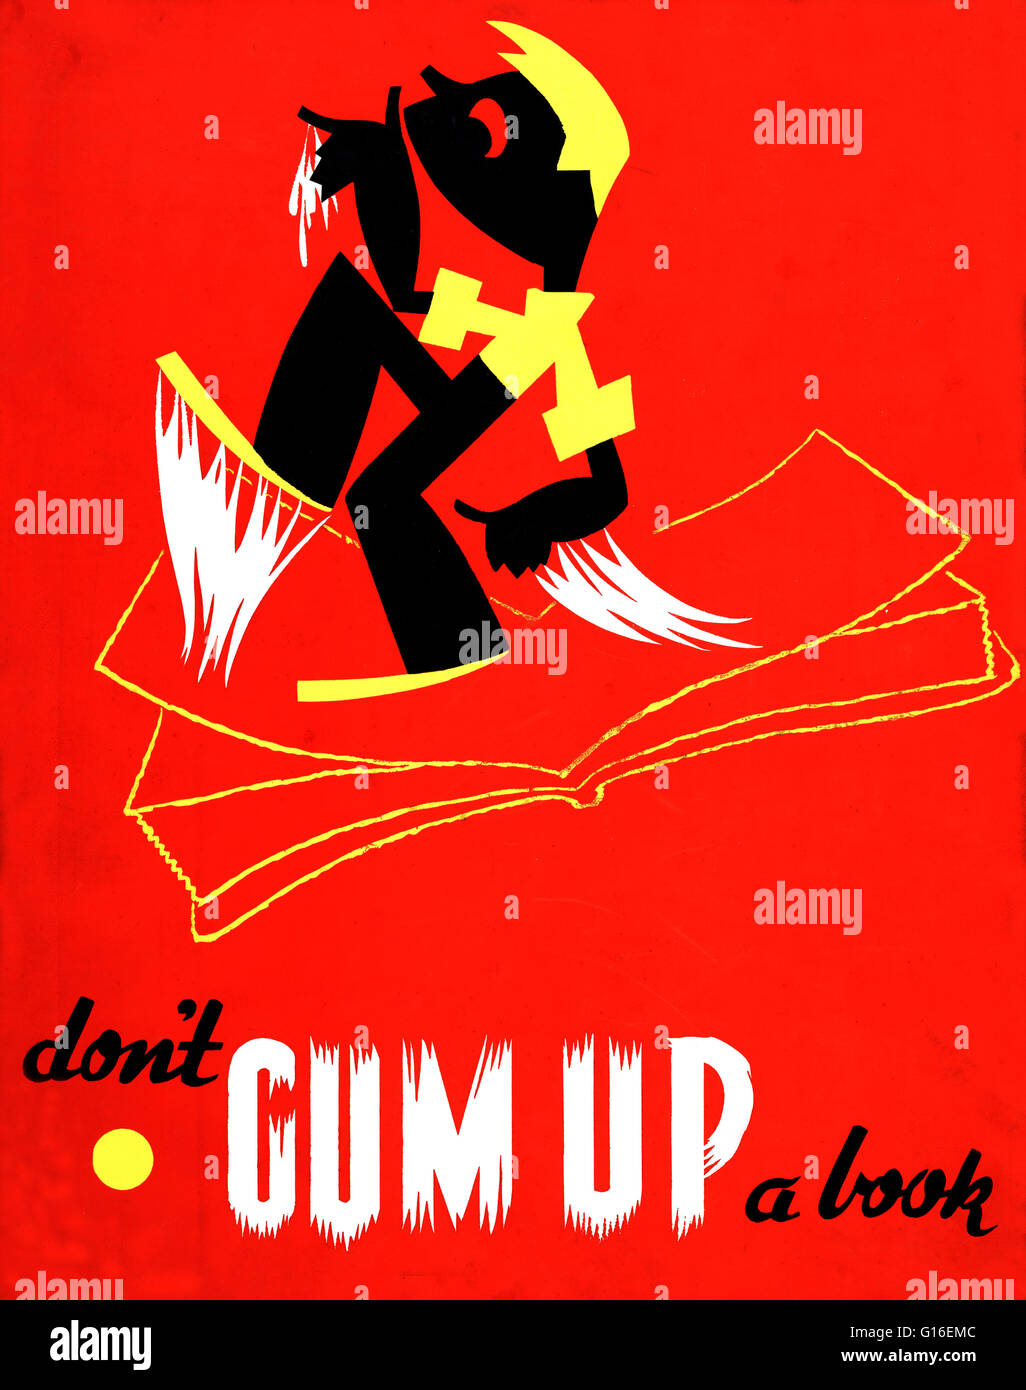 Entitled: 'Don't gum up a book'. Poster shows a boy walking on a book with gummed up feet and hands. - Stock Image